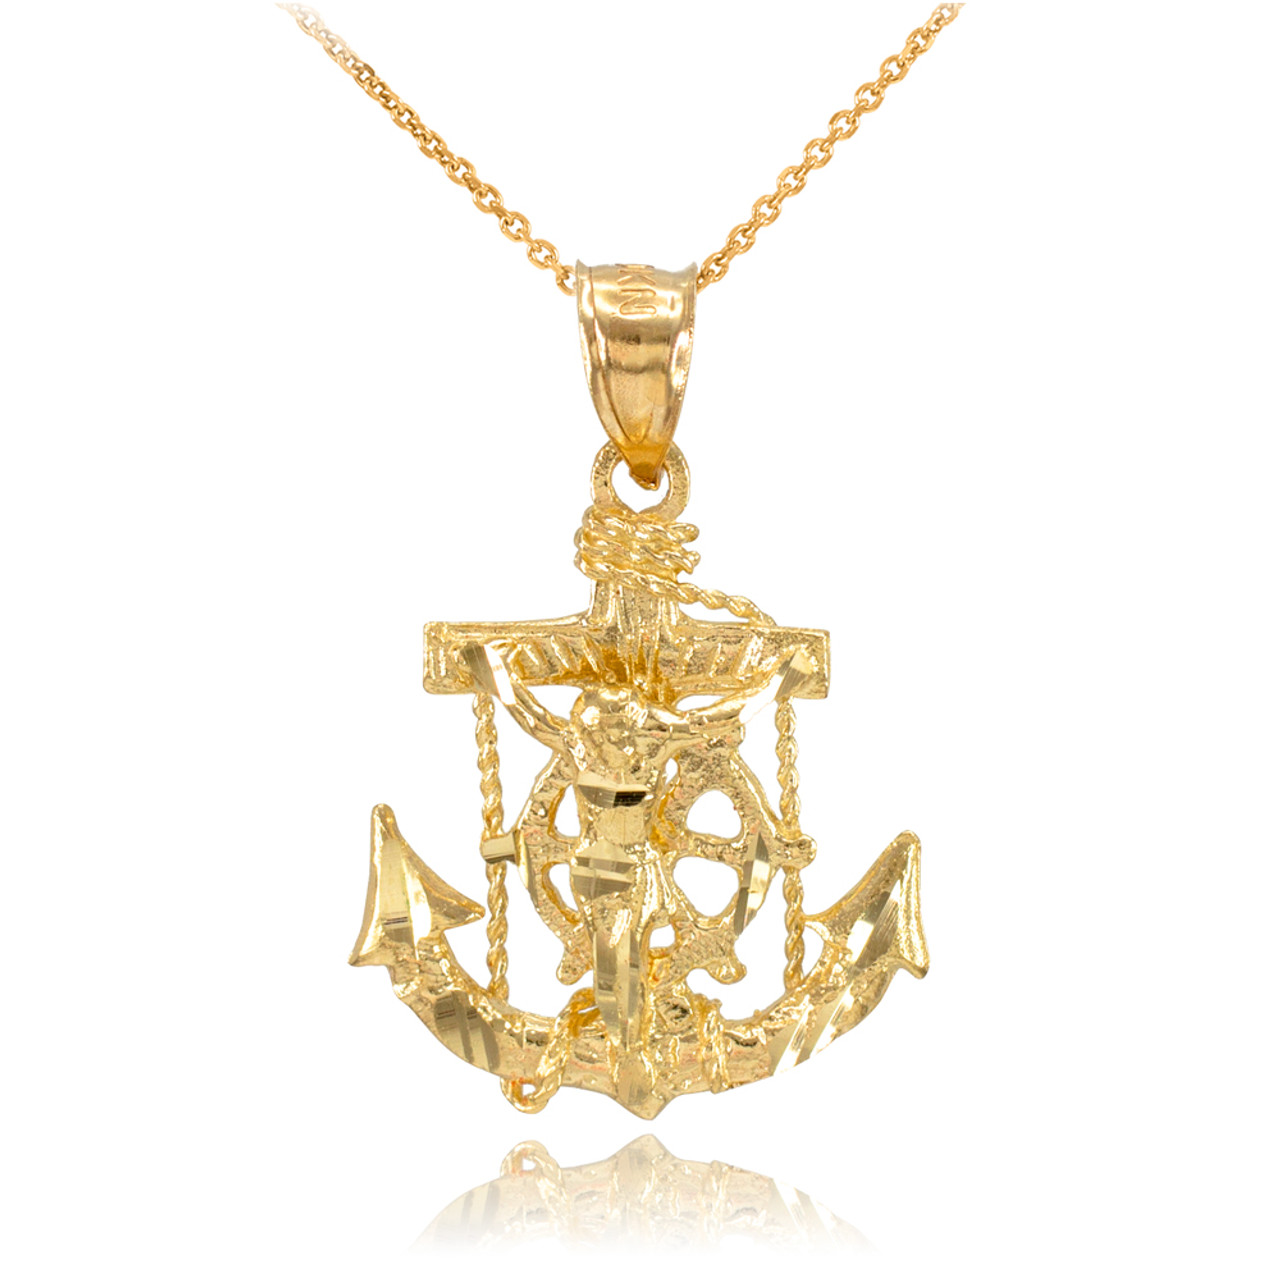 Gold mariner crucifix anchor cross pendant necklace gold mariners gold mariner crucifix anchor cross pendant necklace aloadofball Images